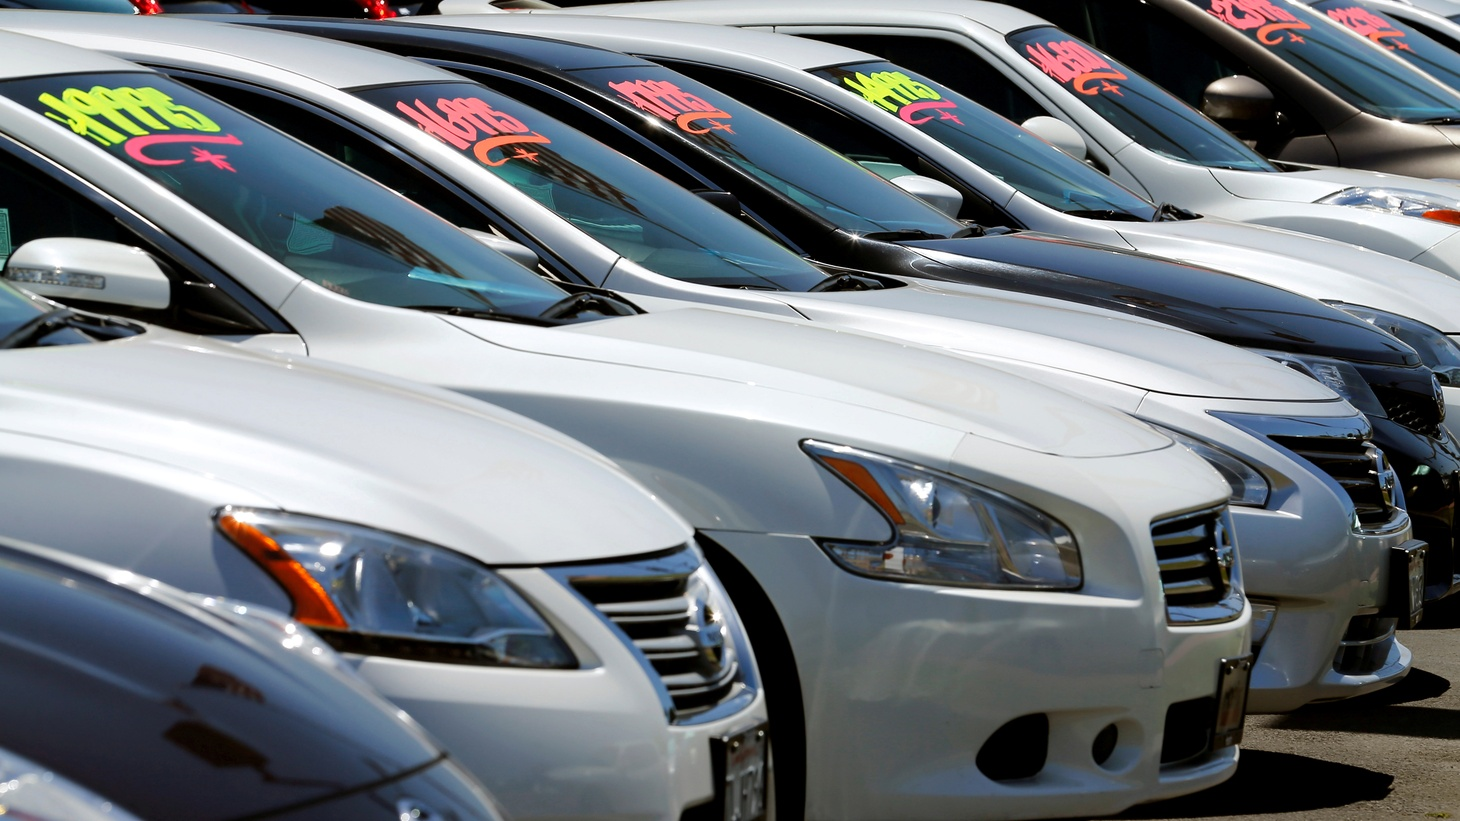 Automobiles are shown for sale at a car dealership in Carlsbad, California.